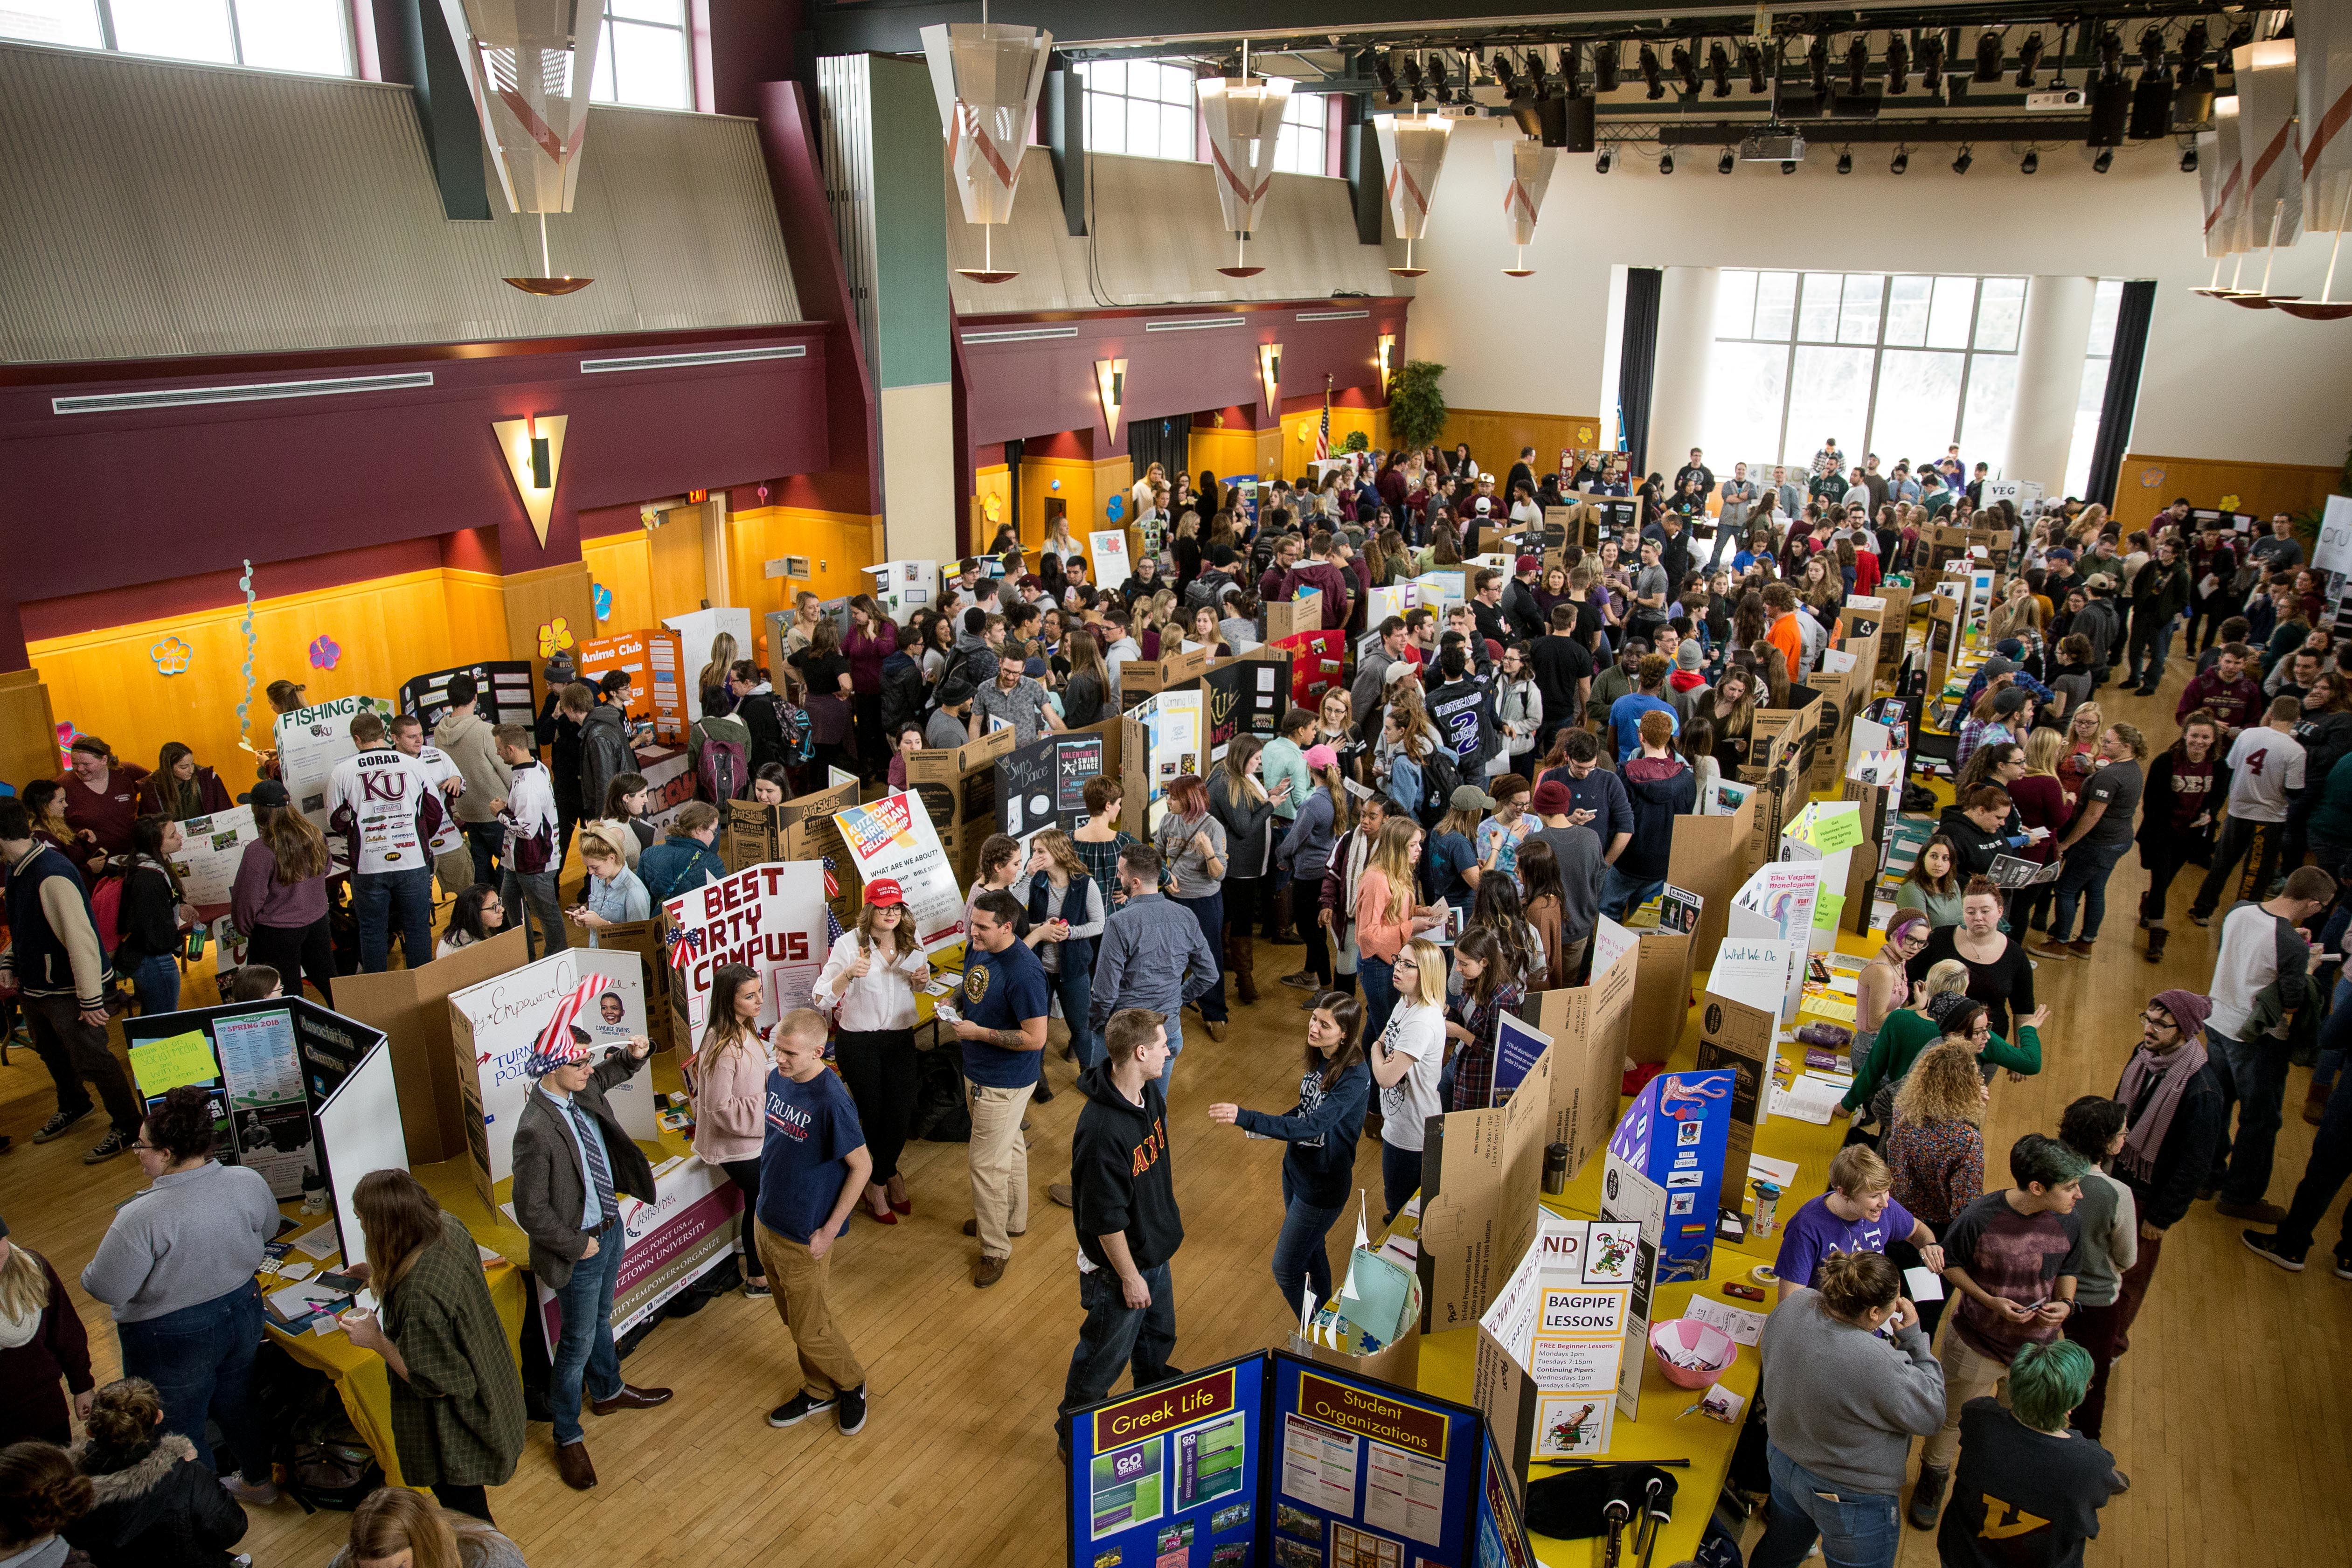 overview photo of large room with many students exploring tables of information about student organizations